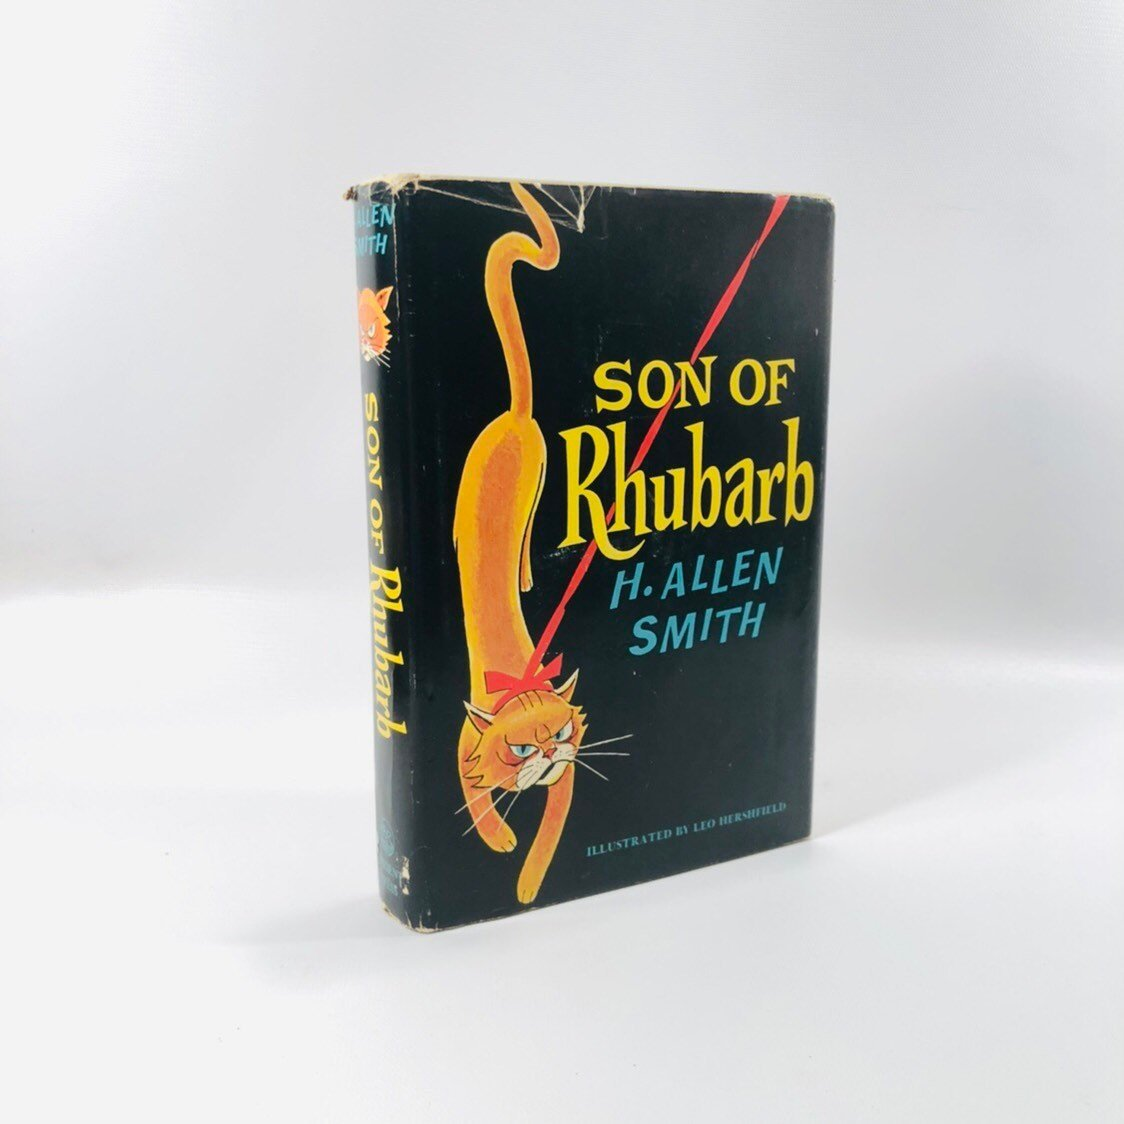 Son of Rhubard by H. Allen Smith 1967 A Vintage Book